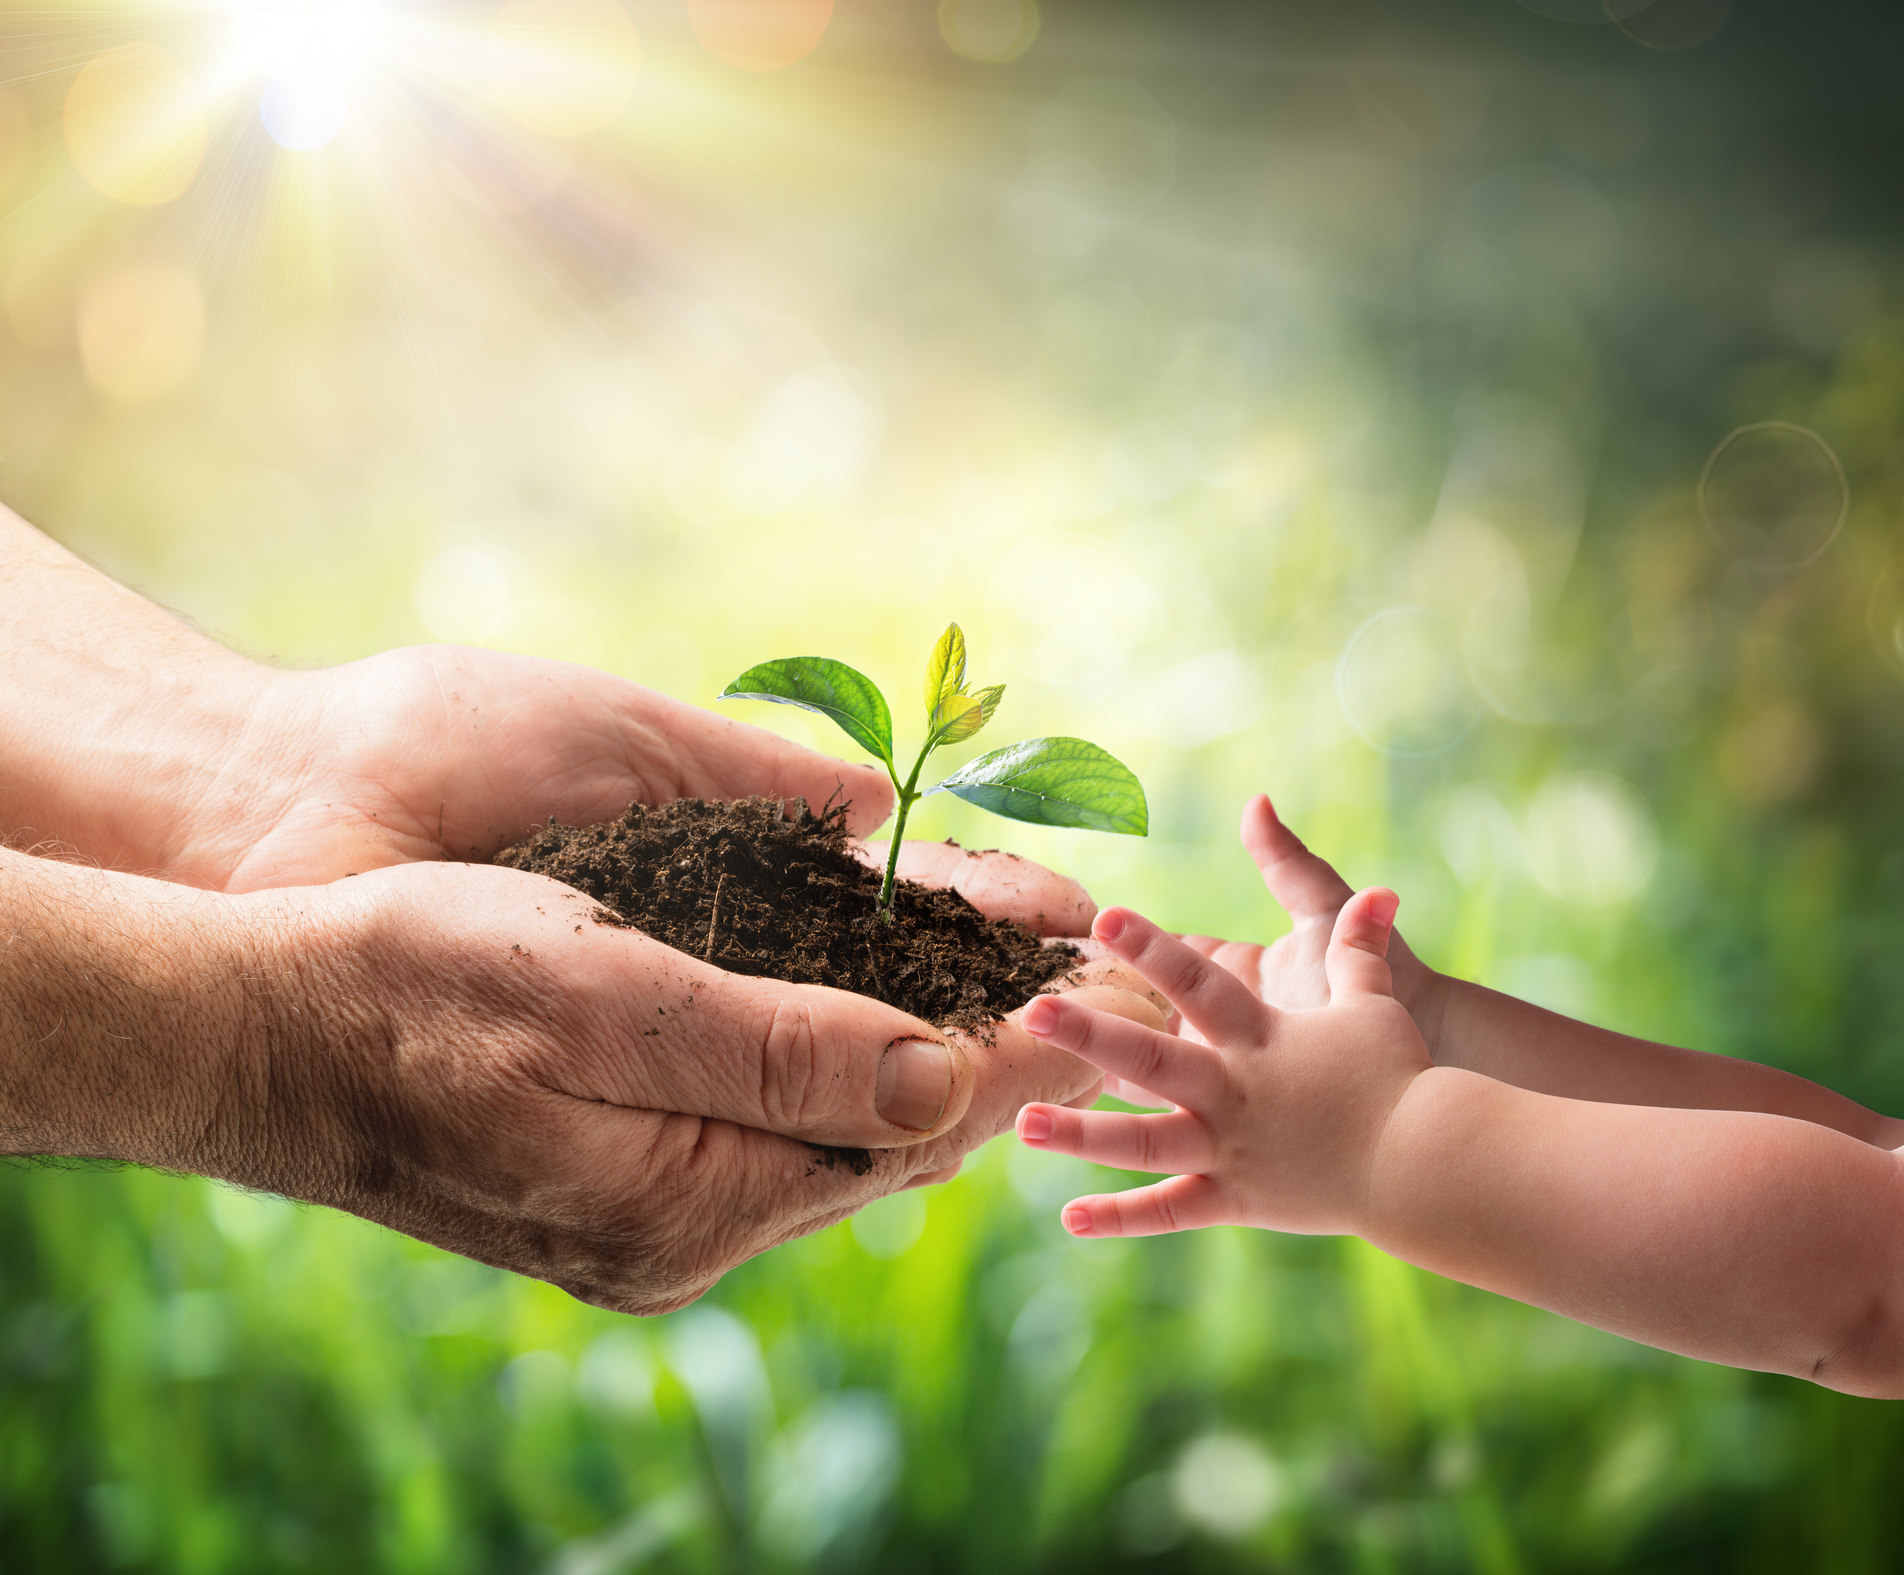 Environmental Protection For New Generation